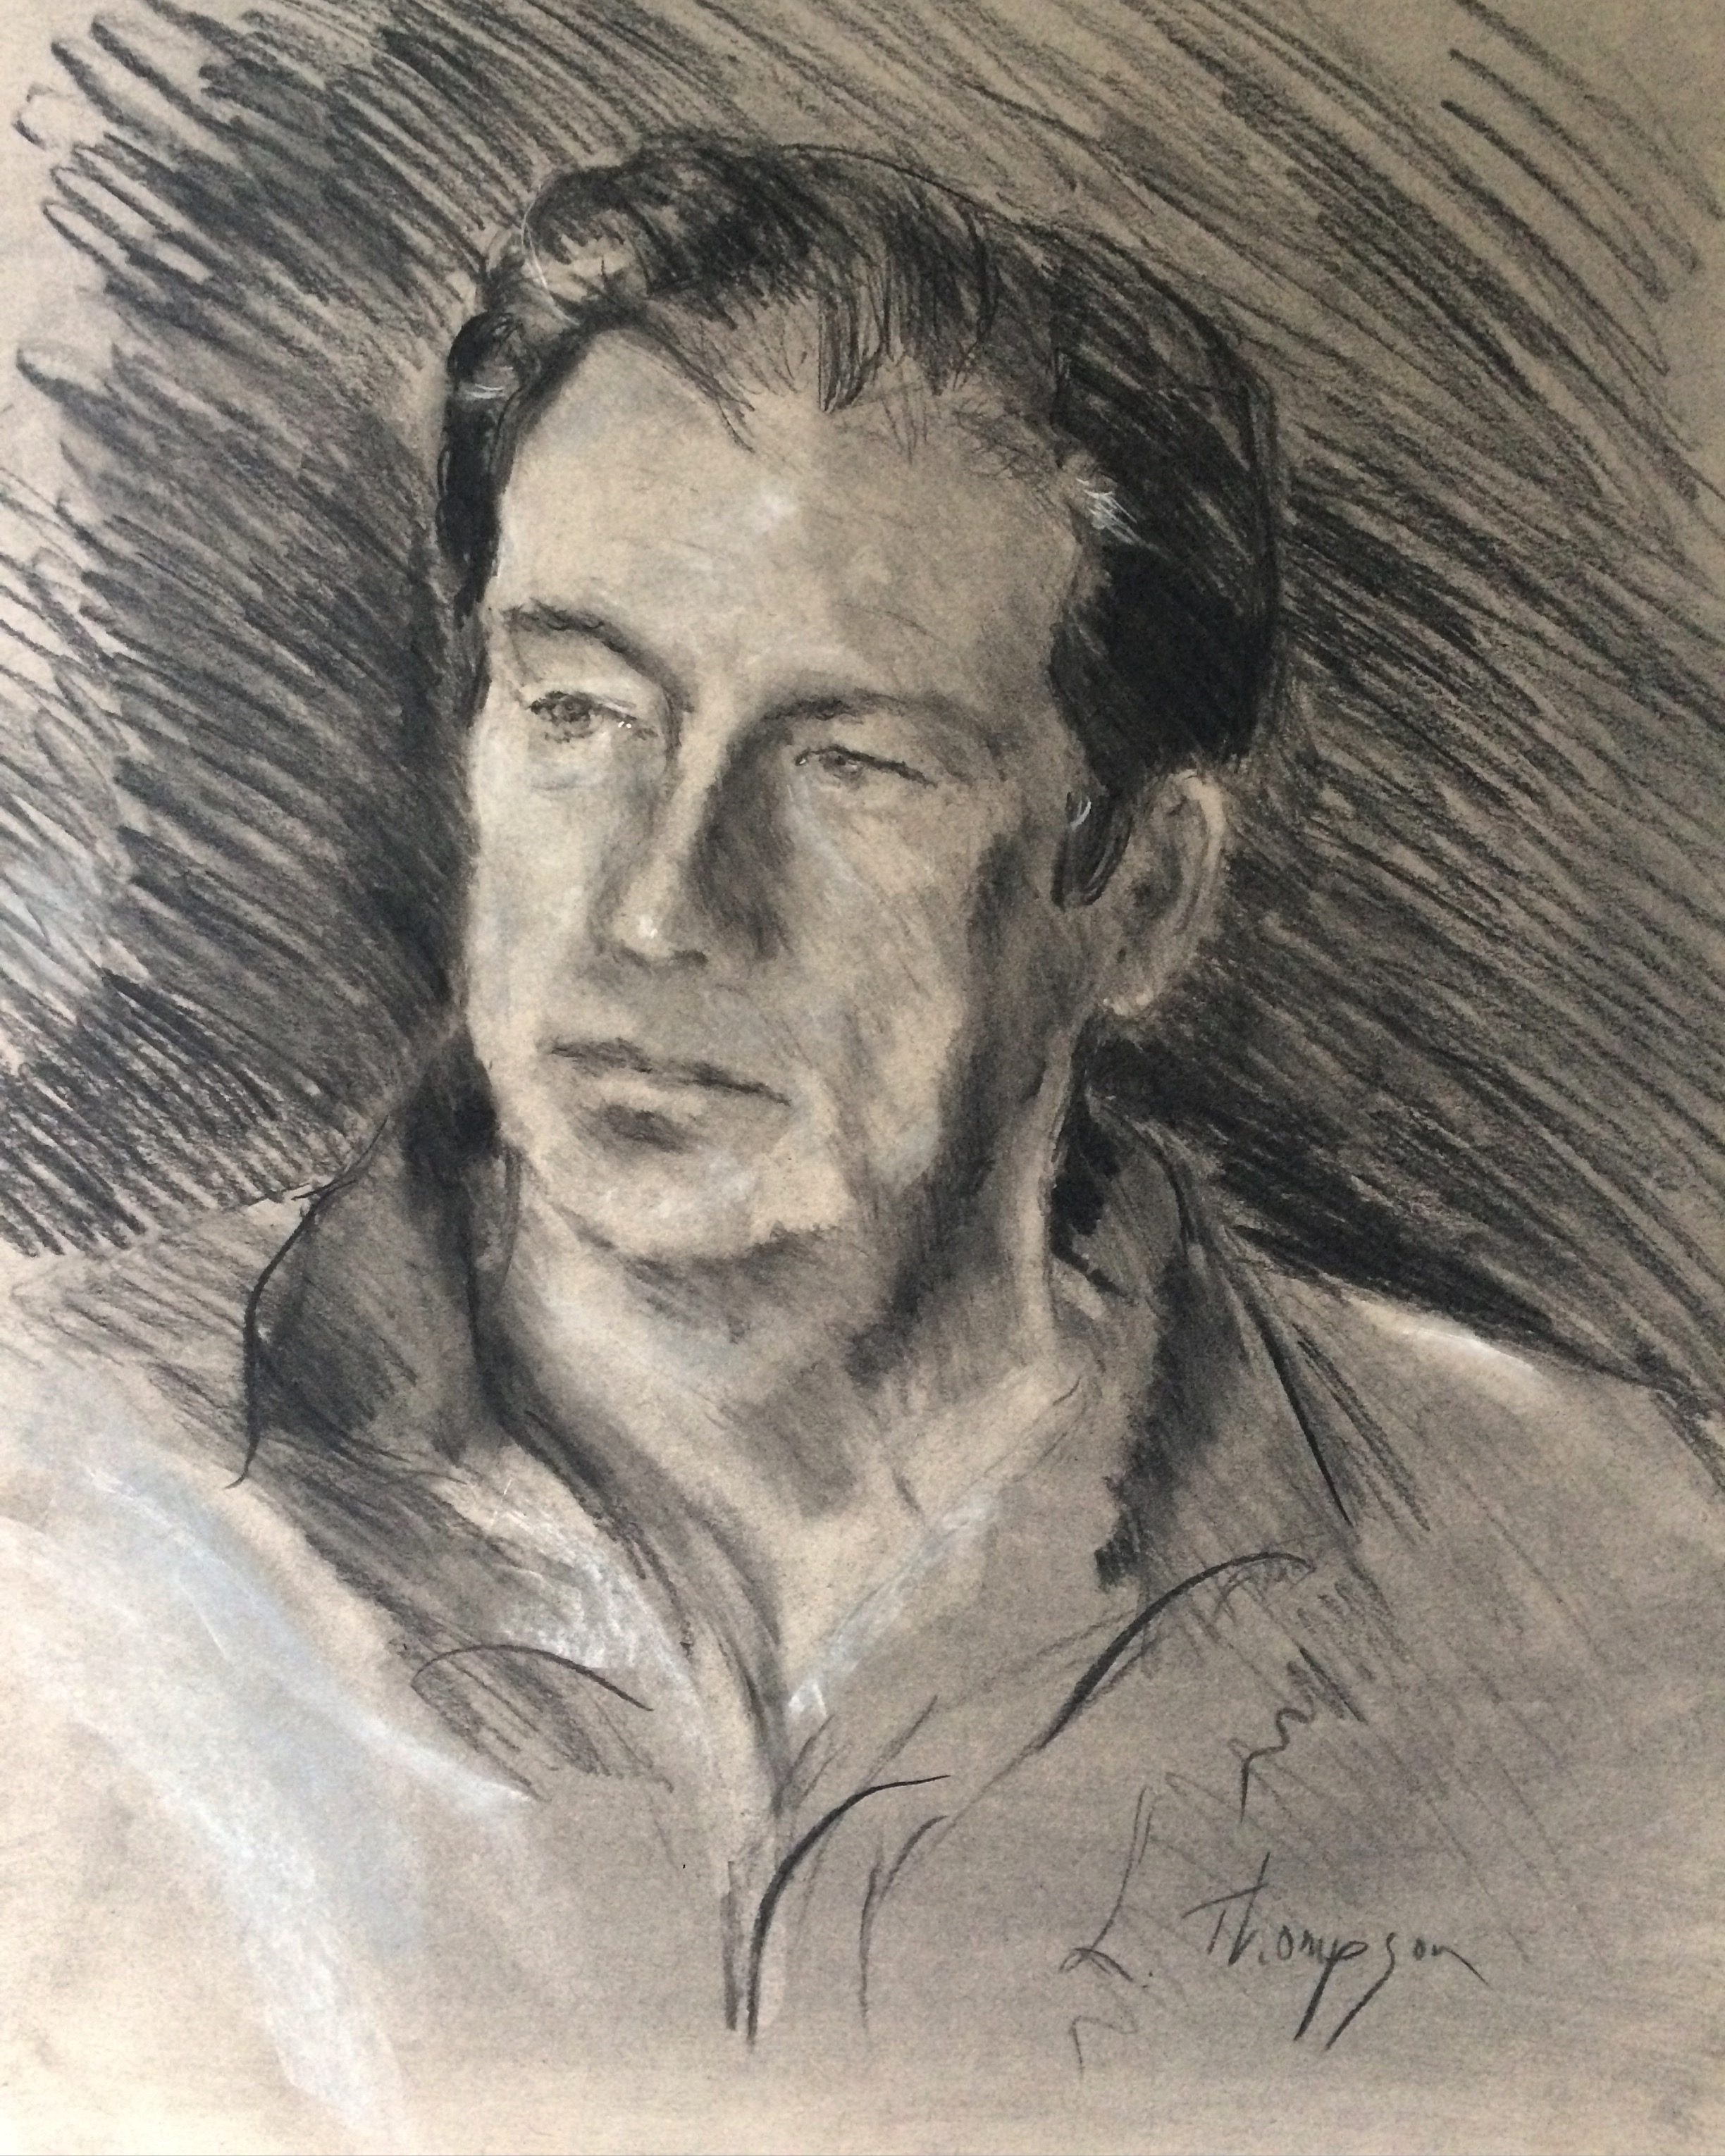 charcoal sketch of dad from life